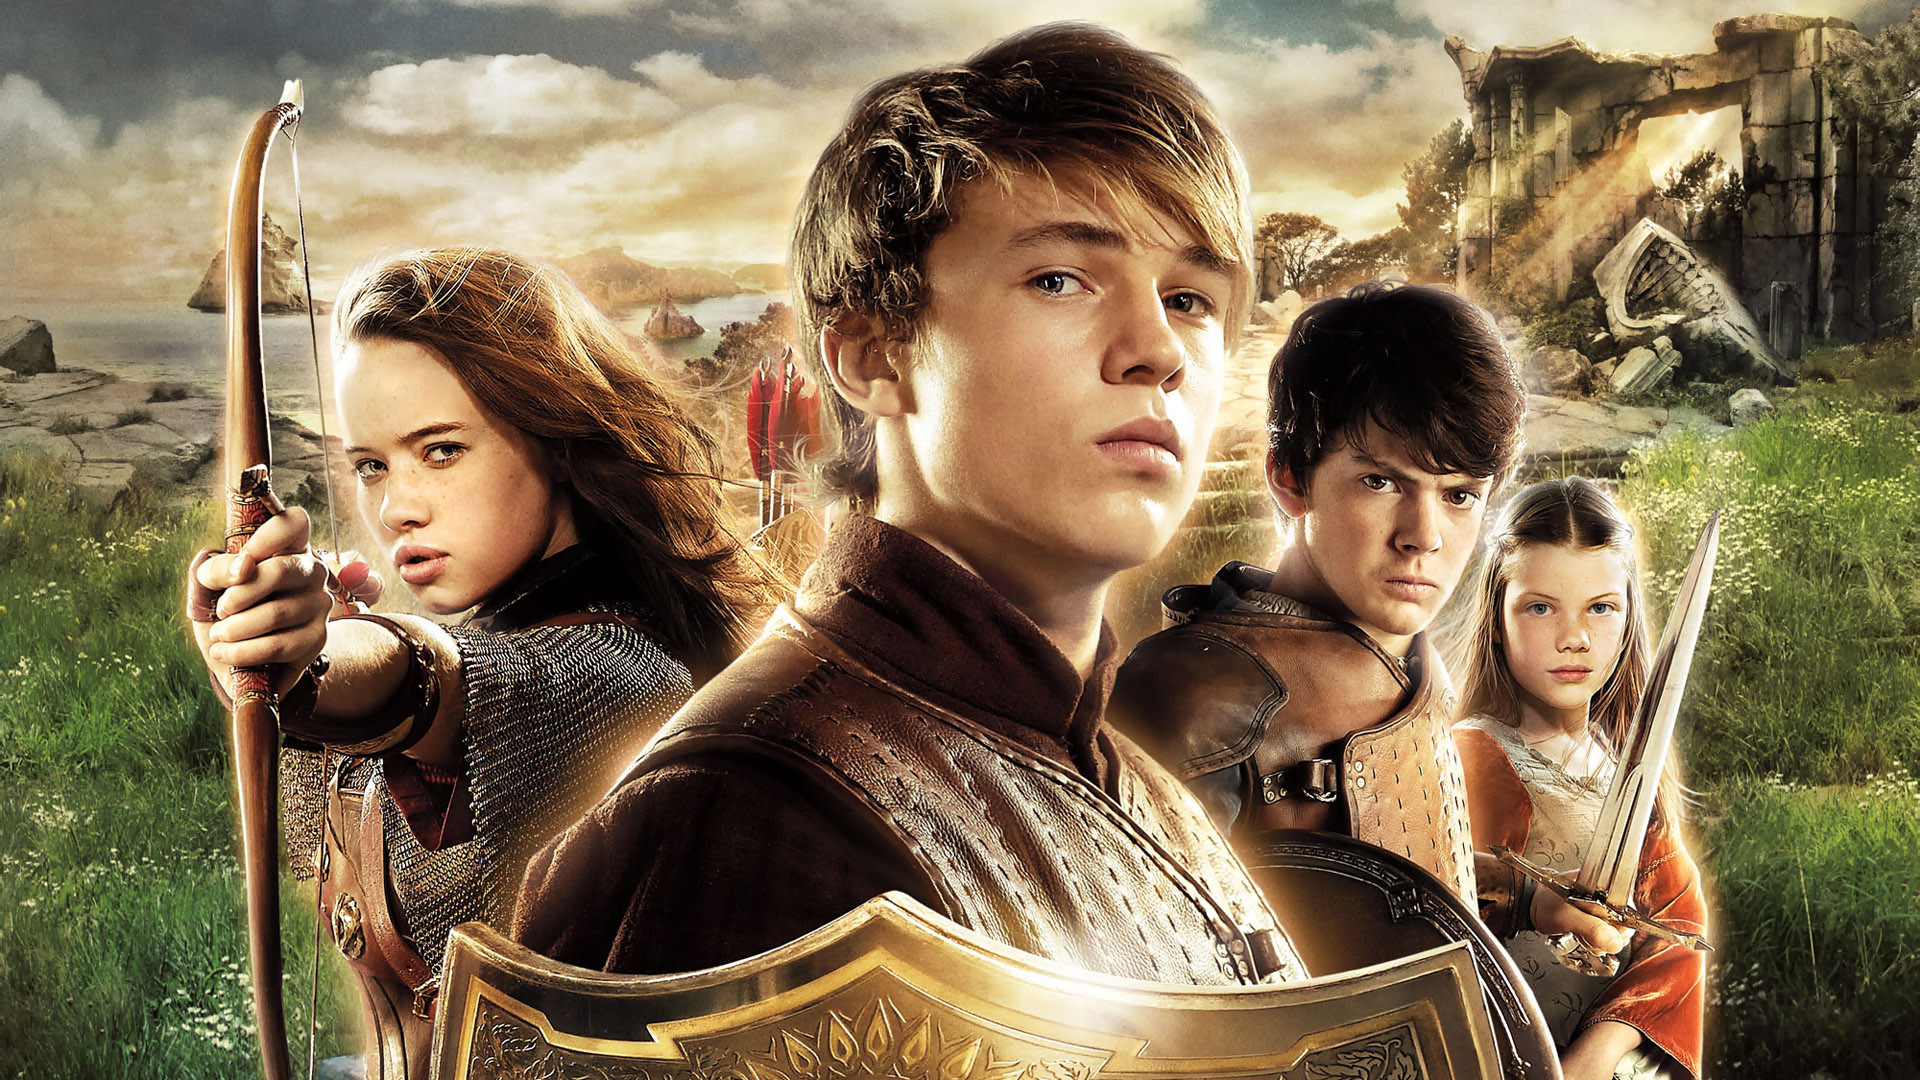 Narnia Wallpapers High Quality Download Free